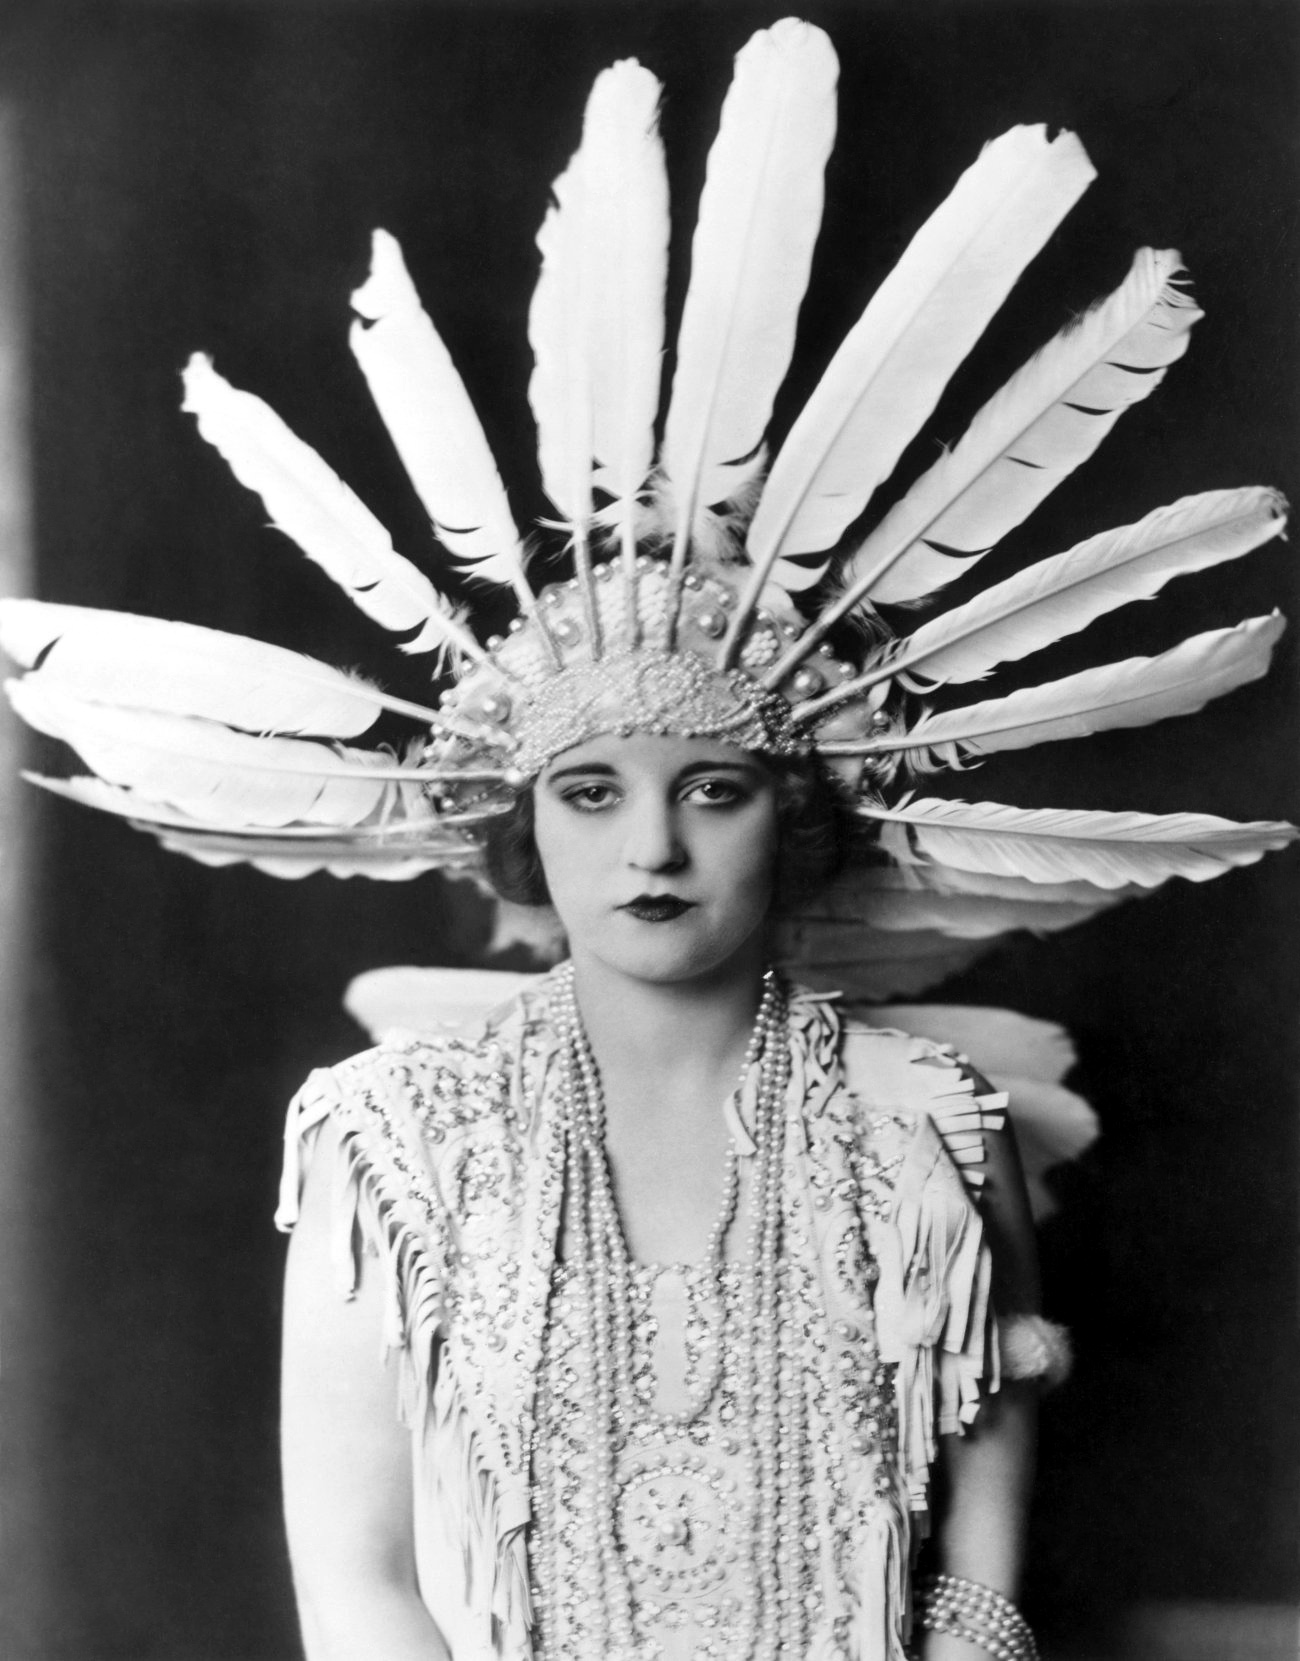 1923: Tallulah Bankhead wearing a large feather headdress and beaded necklaces - The Dancers